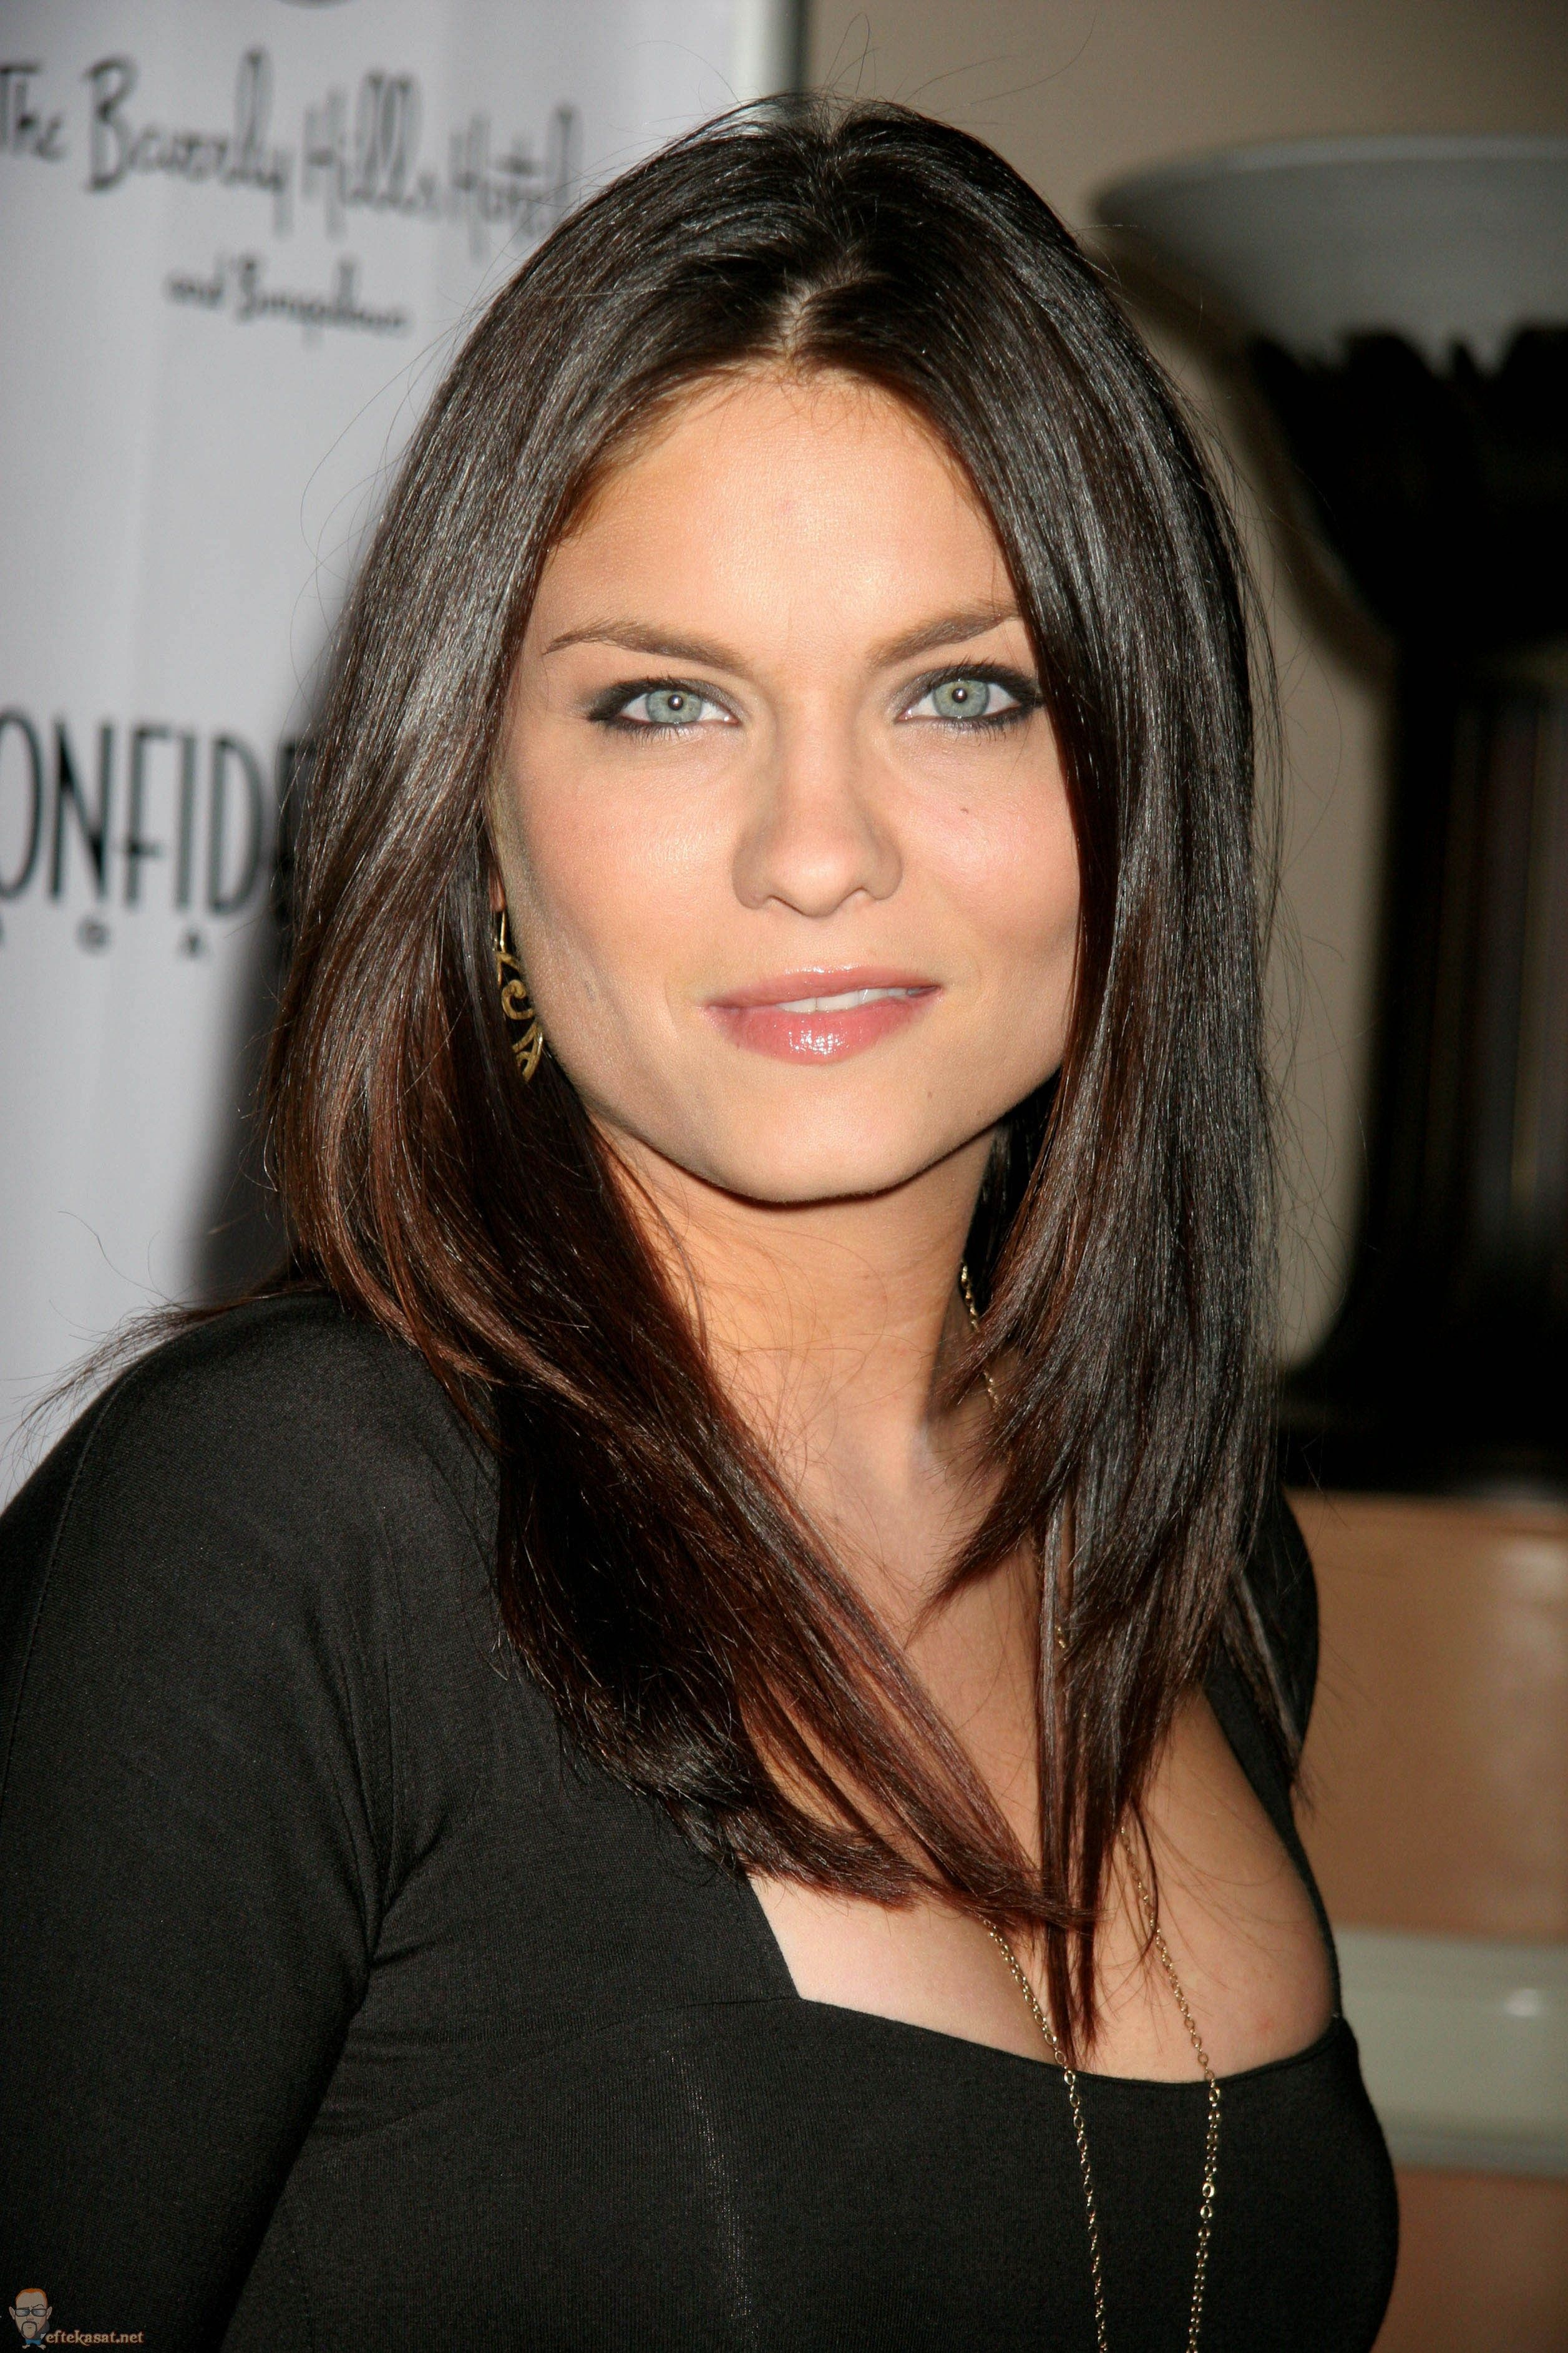 Jodi Lyn Okeefe Gretchen Prison Break Probably The Hottest Woman Ive Ever Hated Well Her Character Anyway